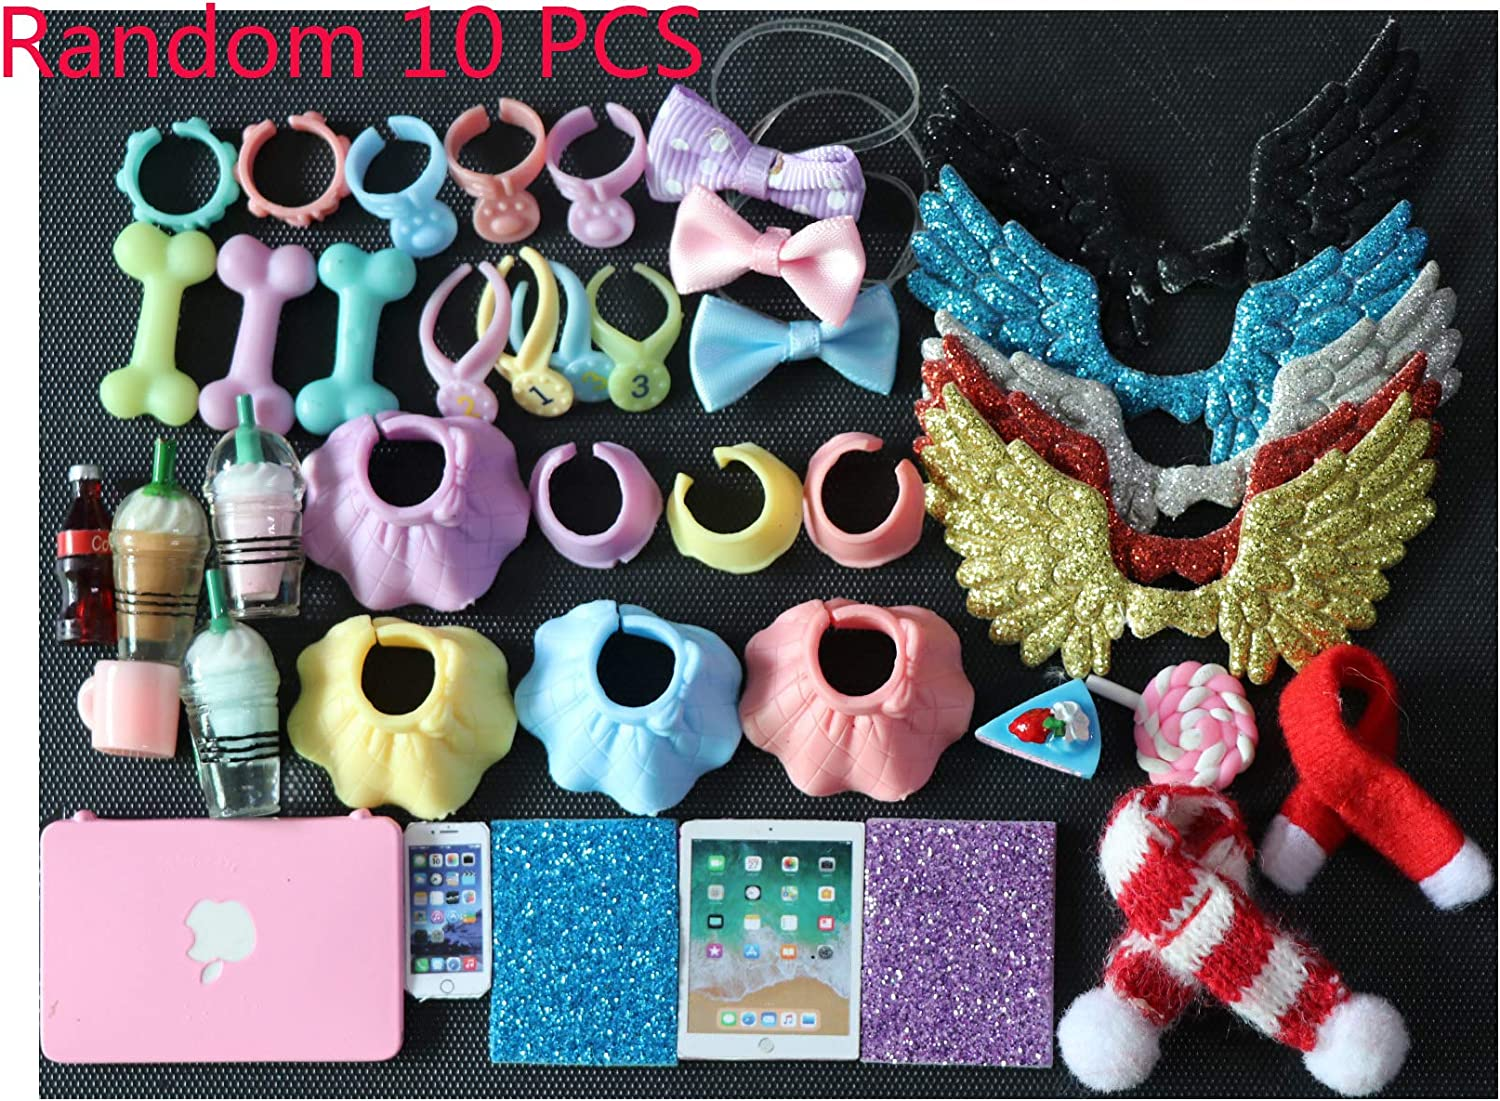 LPS Accessories Lot (Random 10 PCS Clothes Skirts Collars Food and Drink Wings Bow Scarf Phone Laptop Fit LPS Cat and Dog Collie Dachshund Cocker Spaniel Shorthair Cat